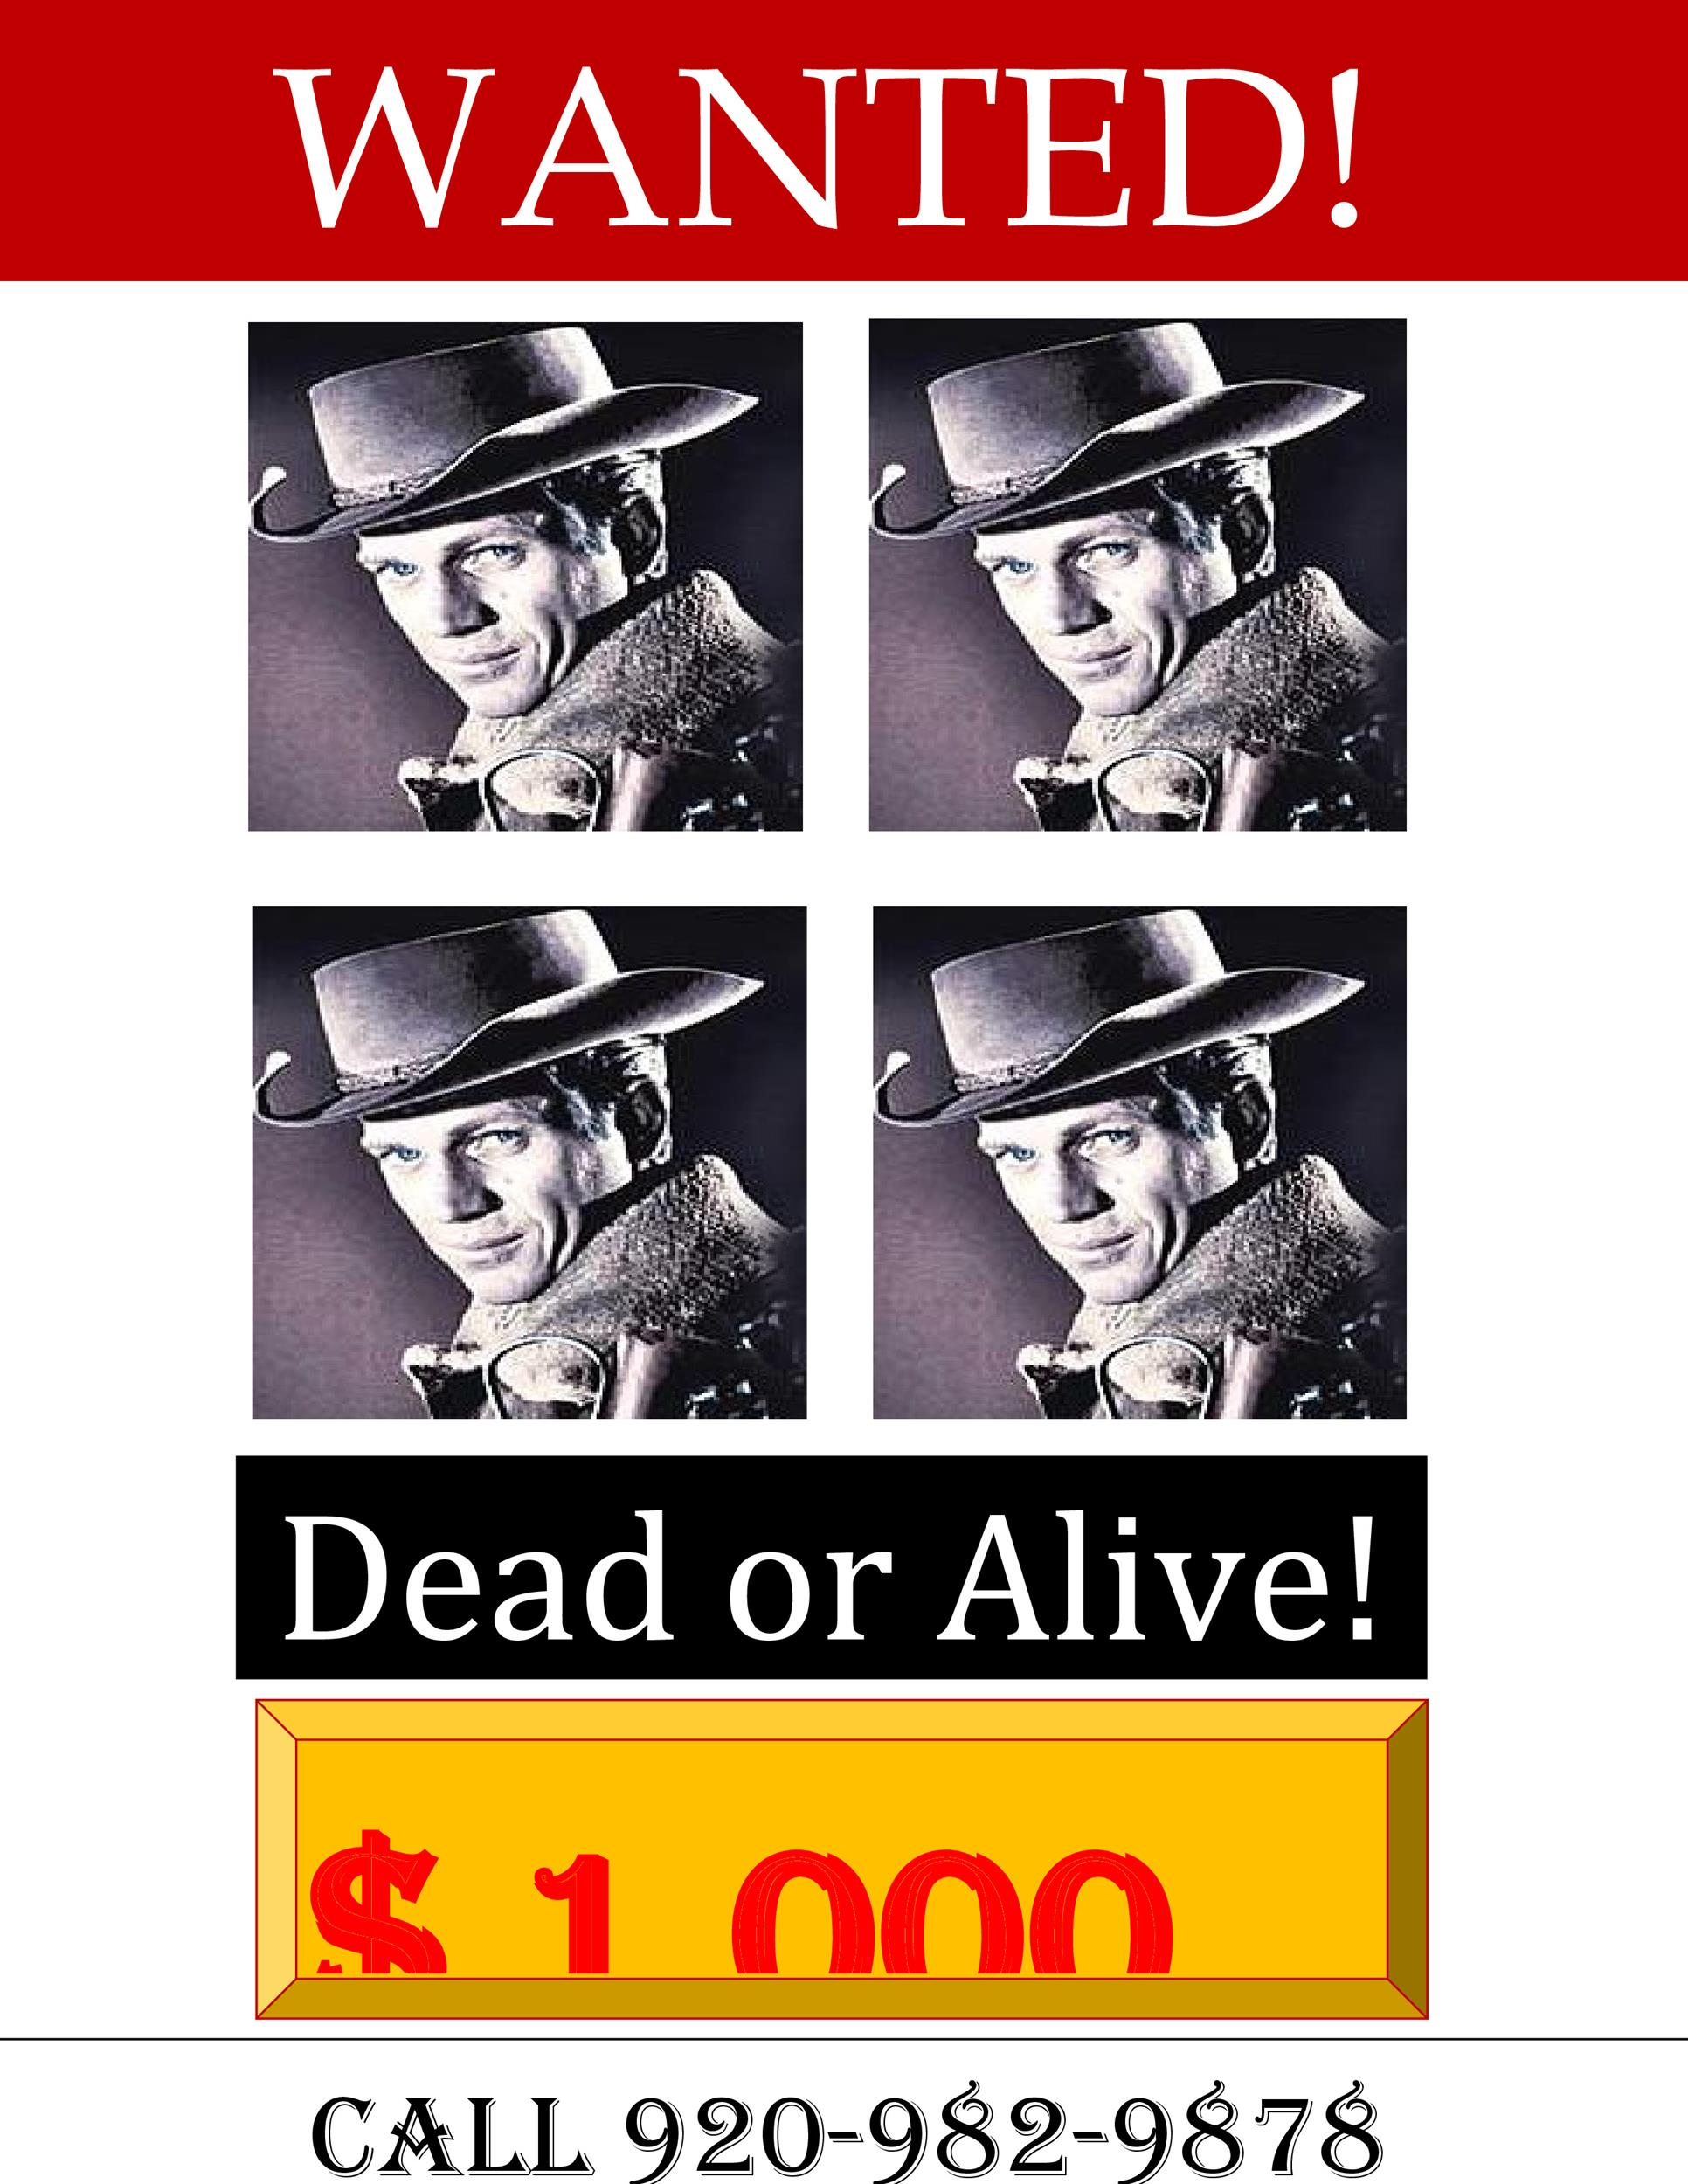 Dead_or_Alive_Wanted_Poster_Template_01